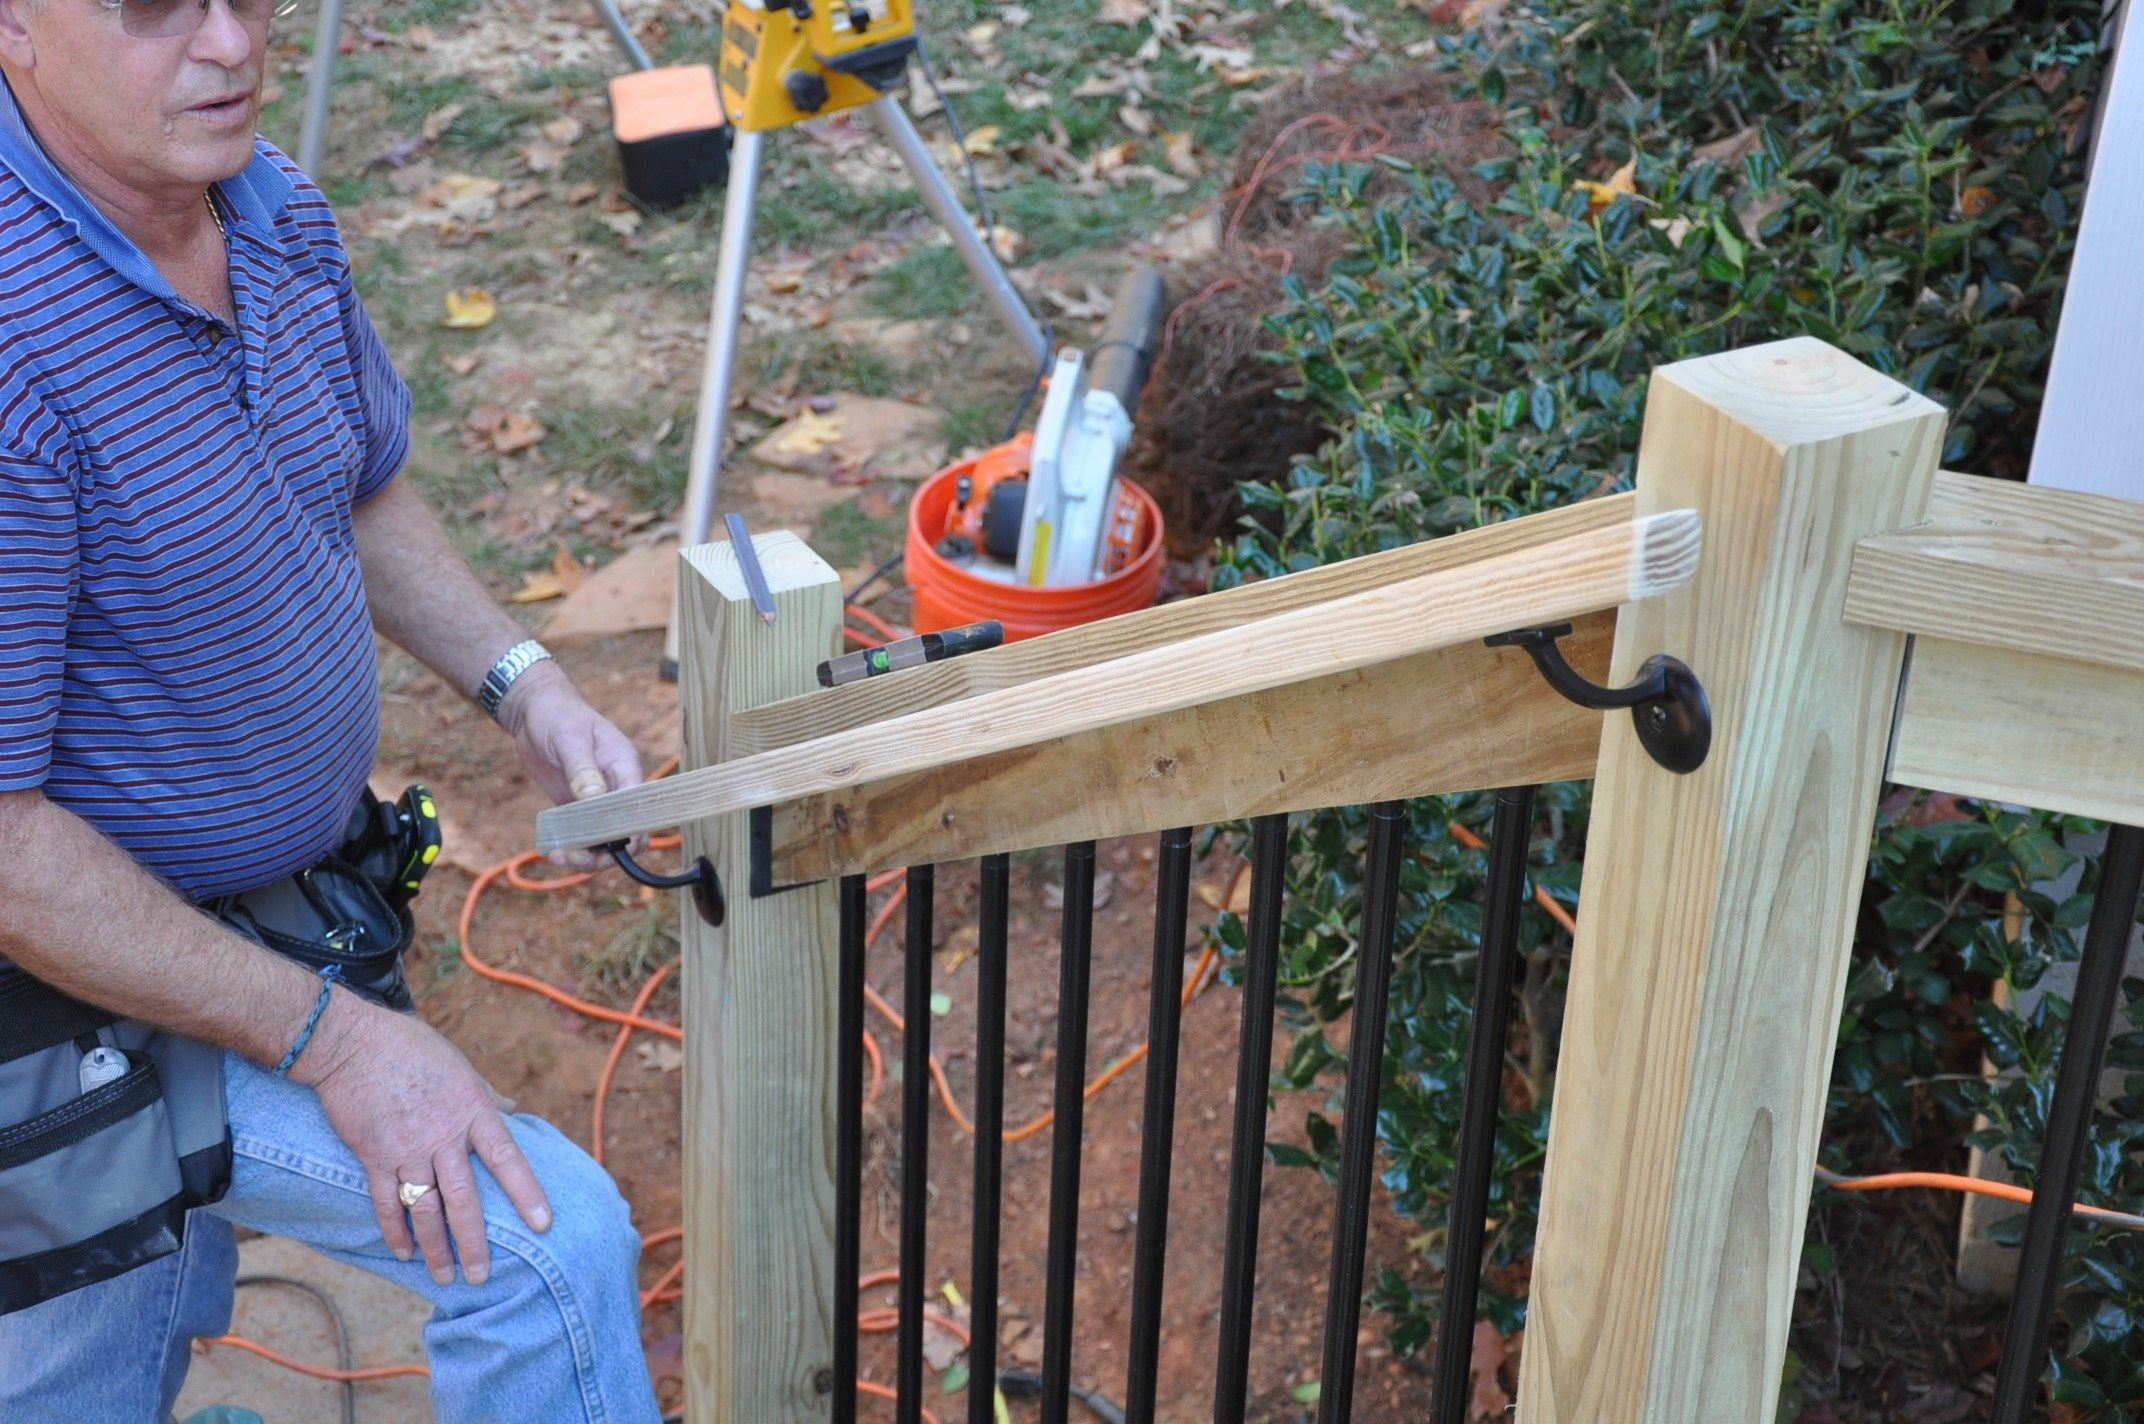 Installing Deck Stair Railings, How To Build A Wooden Handrail For Outdoor Steps